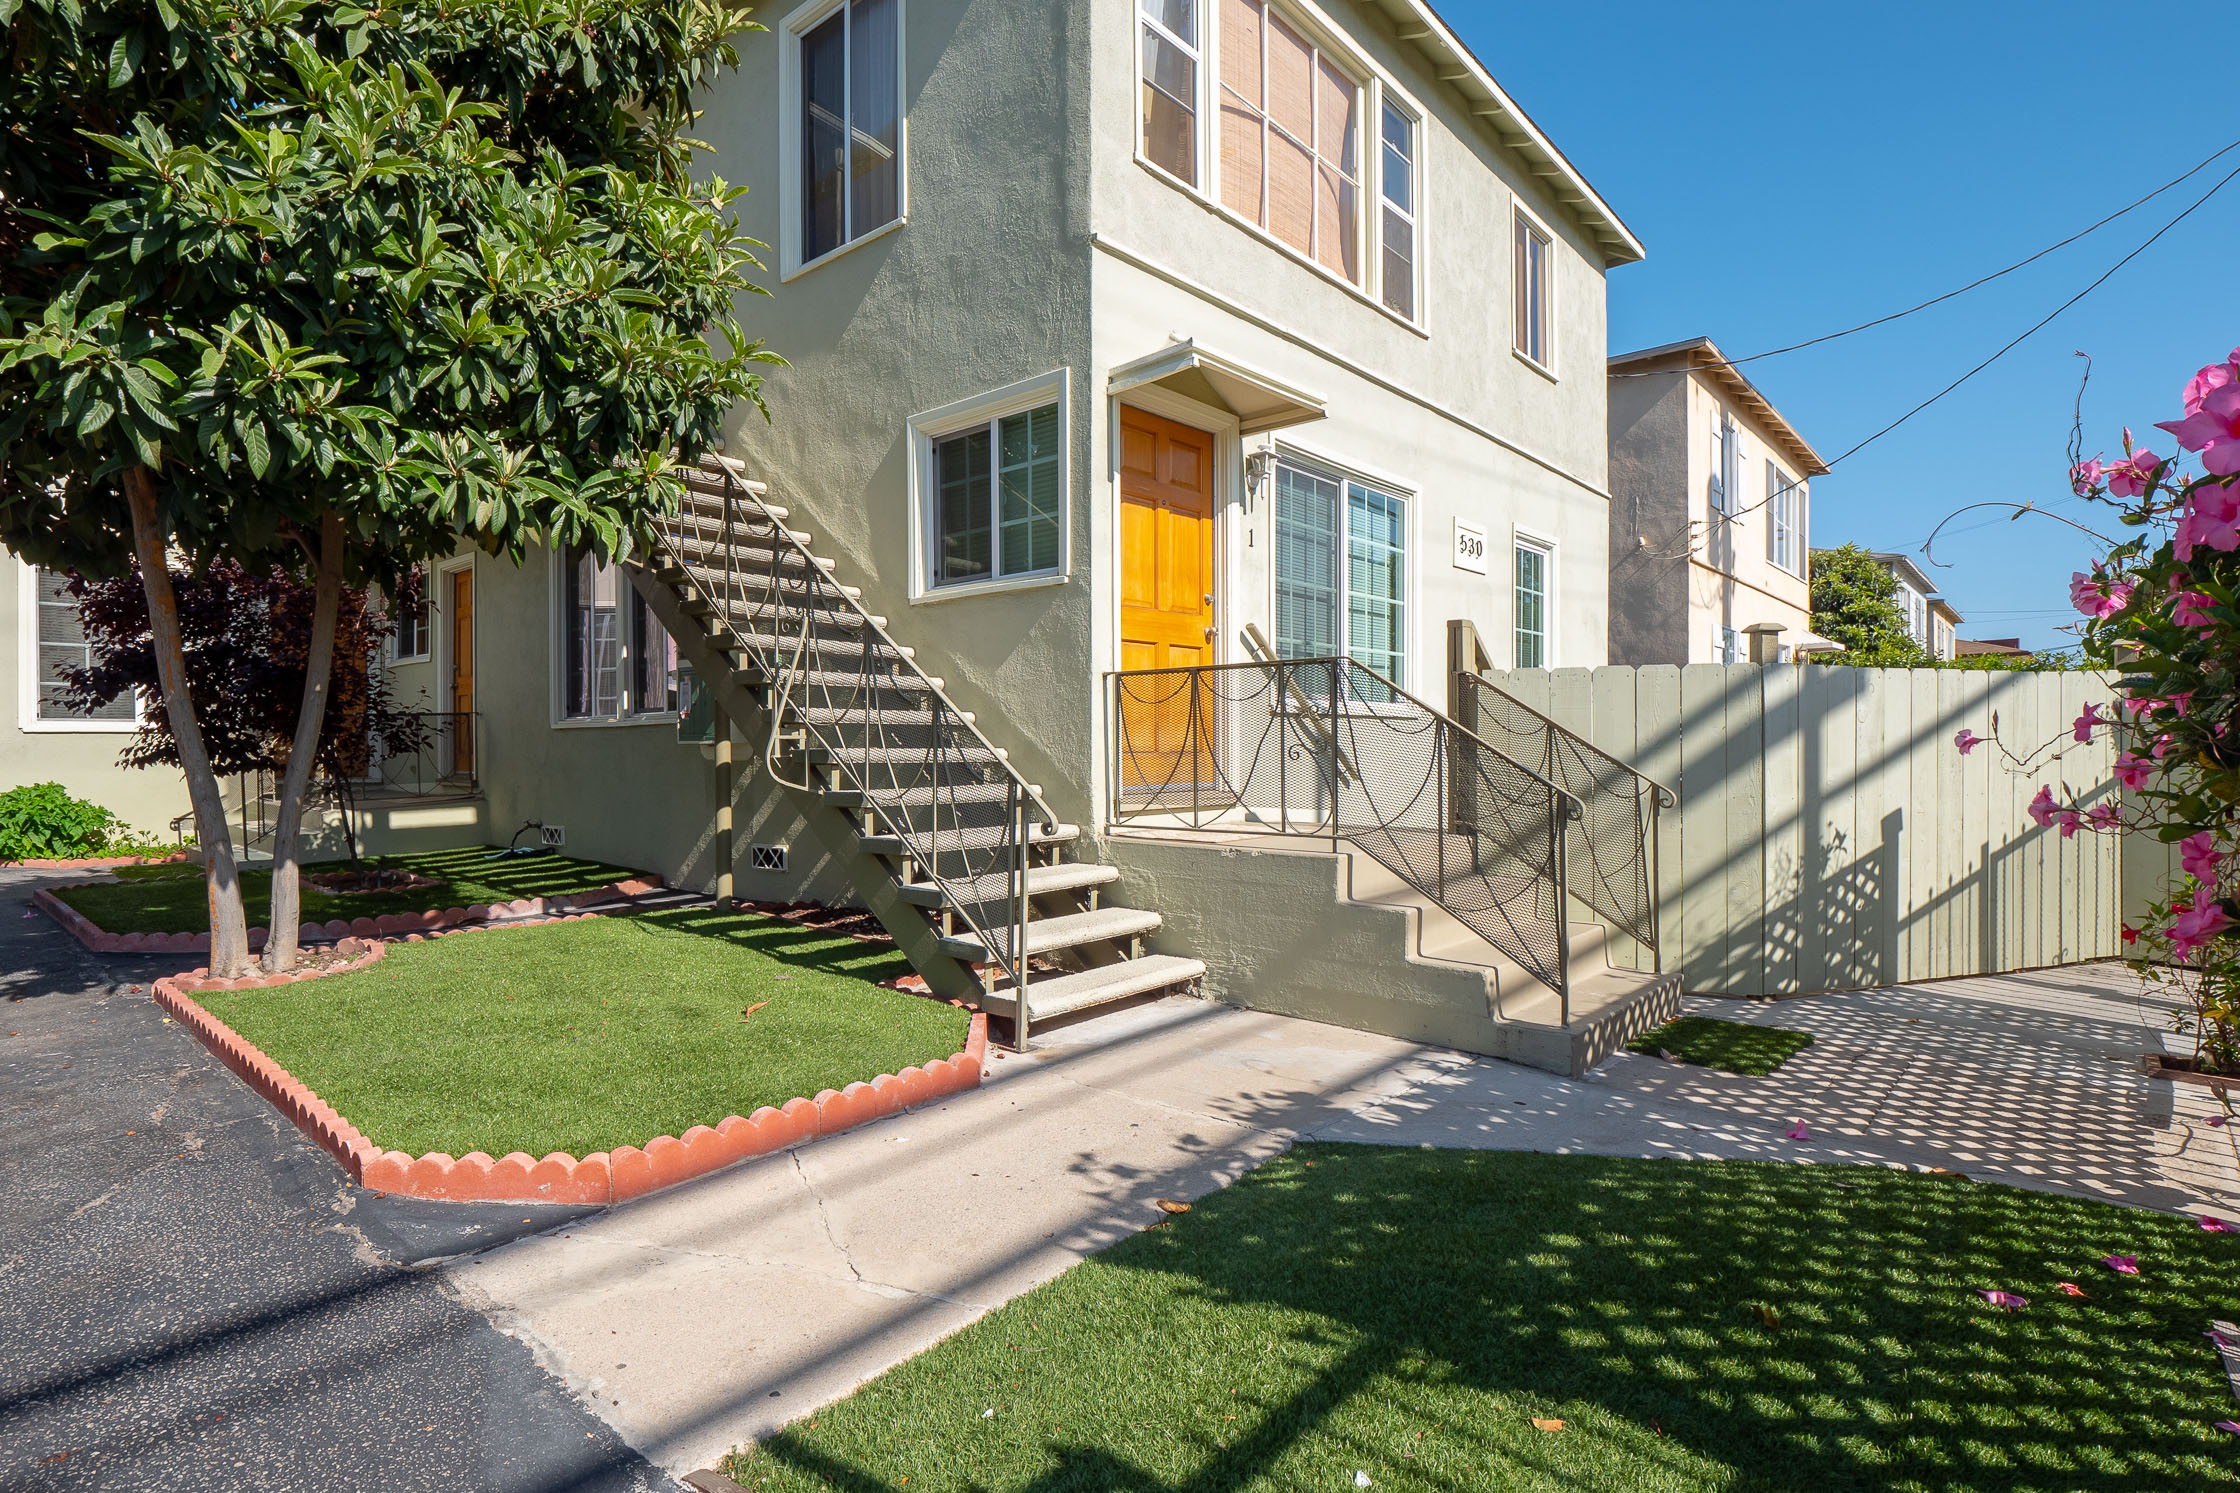 Darling Mid-Century 2 Bed/ 1 Bath in Hip Larchmont Village w/ Private Front Yard!